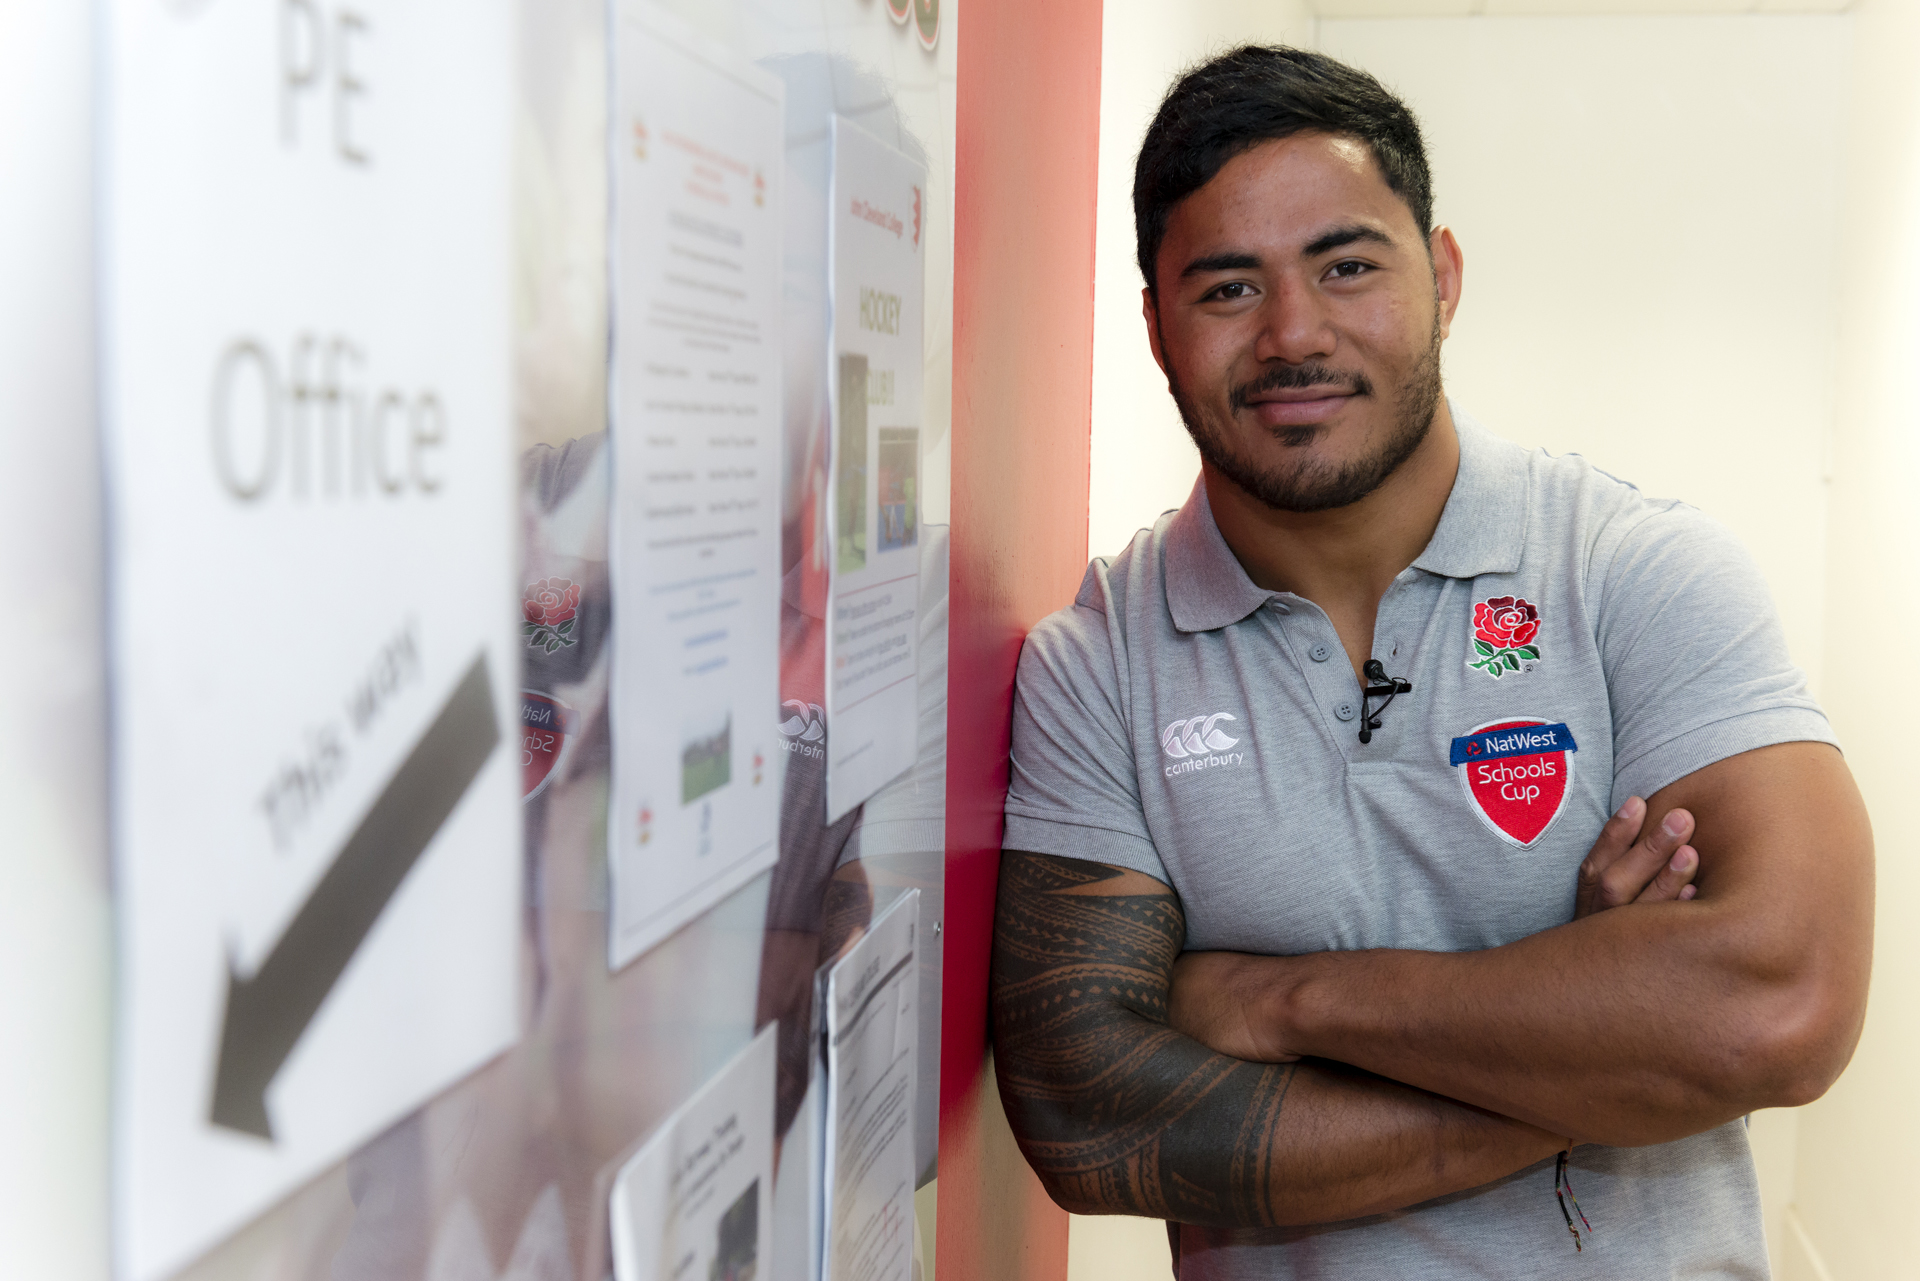 Leicester Tigers and Lions rugby ace Manu Tuilagi visits his old school to inspire a new generation of rugby players.